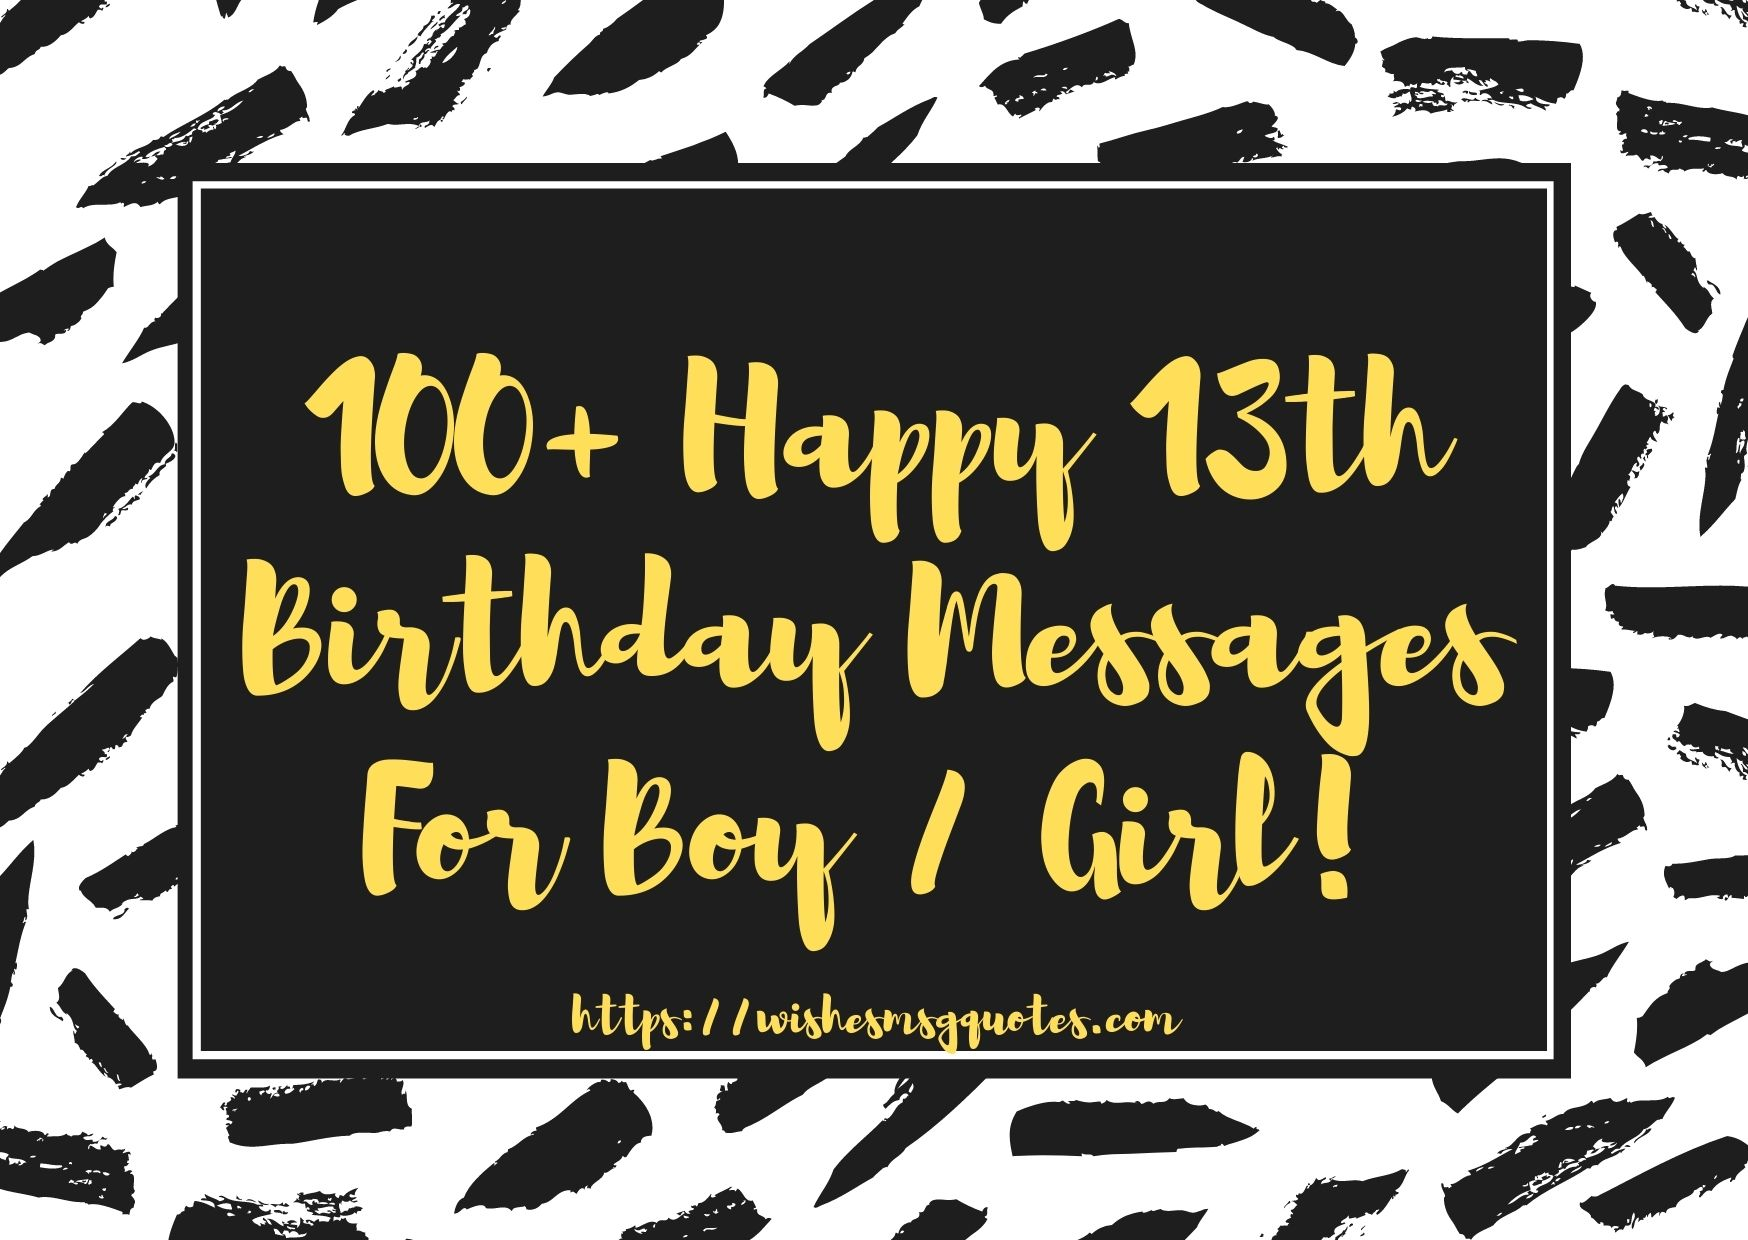 100+ Happy 13th Birthday Messages For Boy And Girl